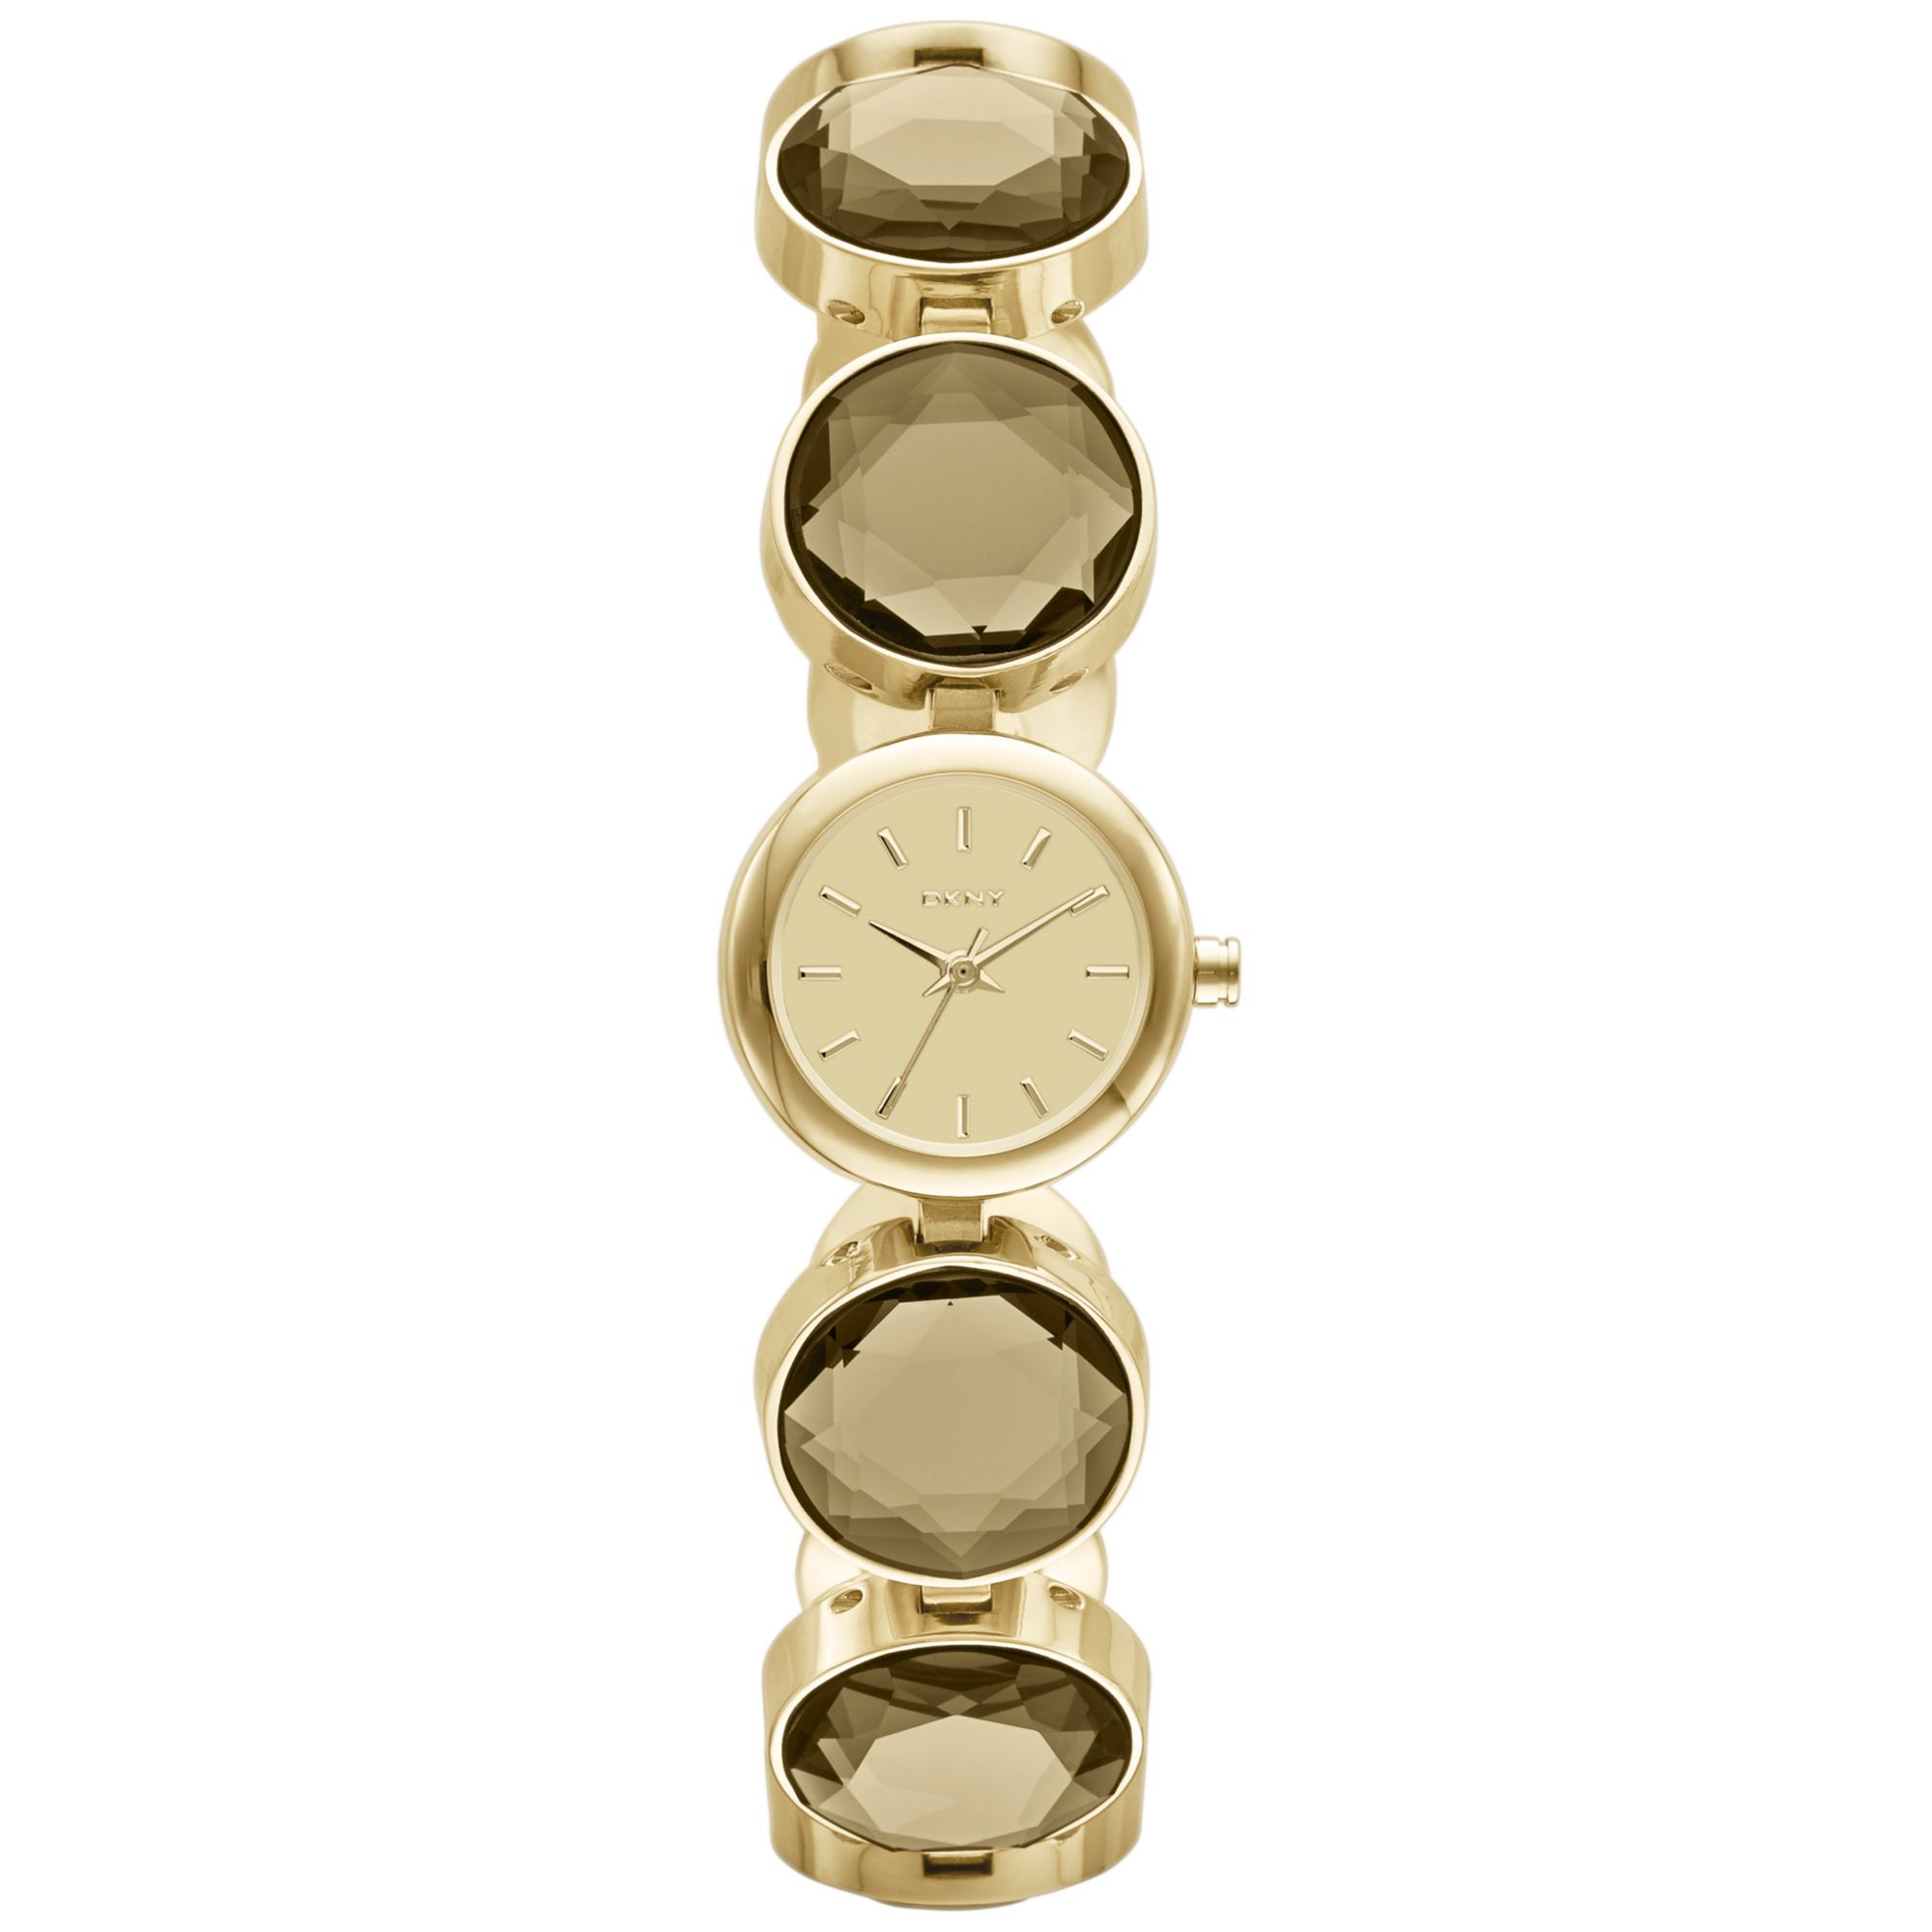 rose women bracelet michael gold norie buymichael rsp kors online white pdp s petite watches main watch strap crystal